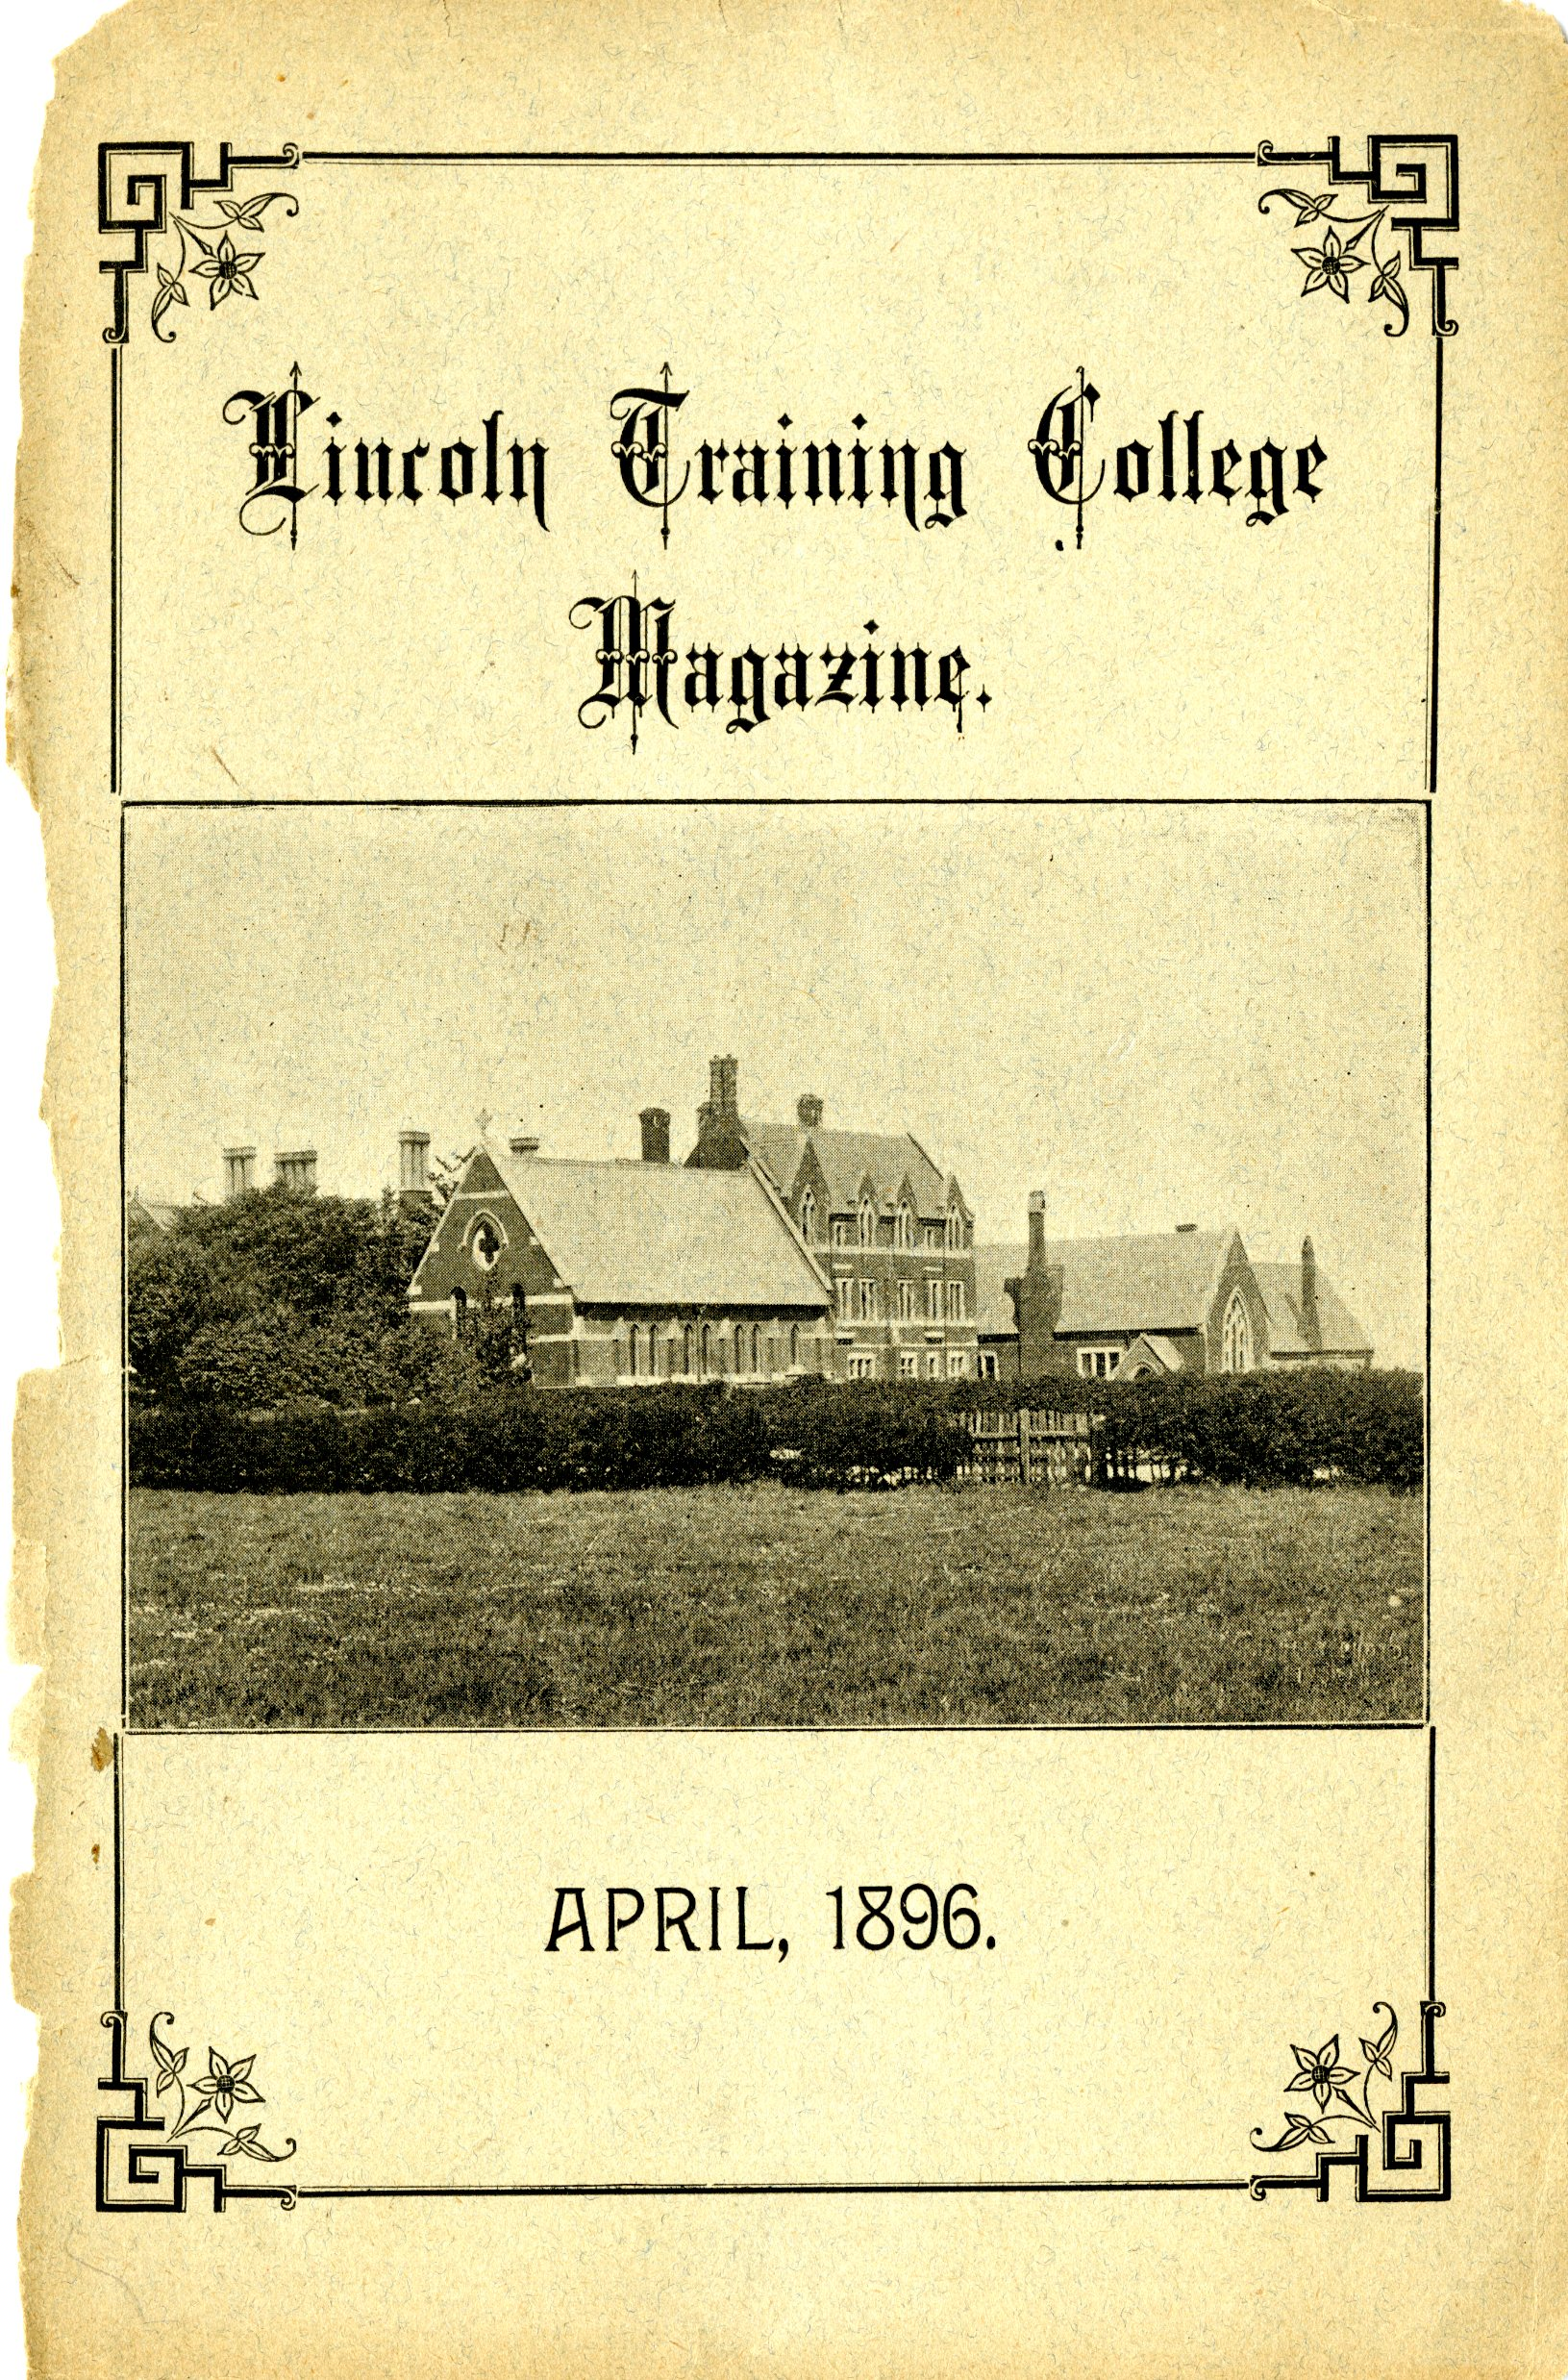 Lincoln Training College magazine April 1896